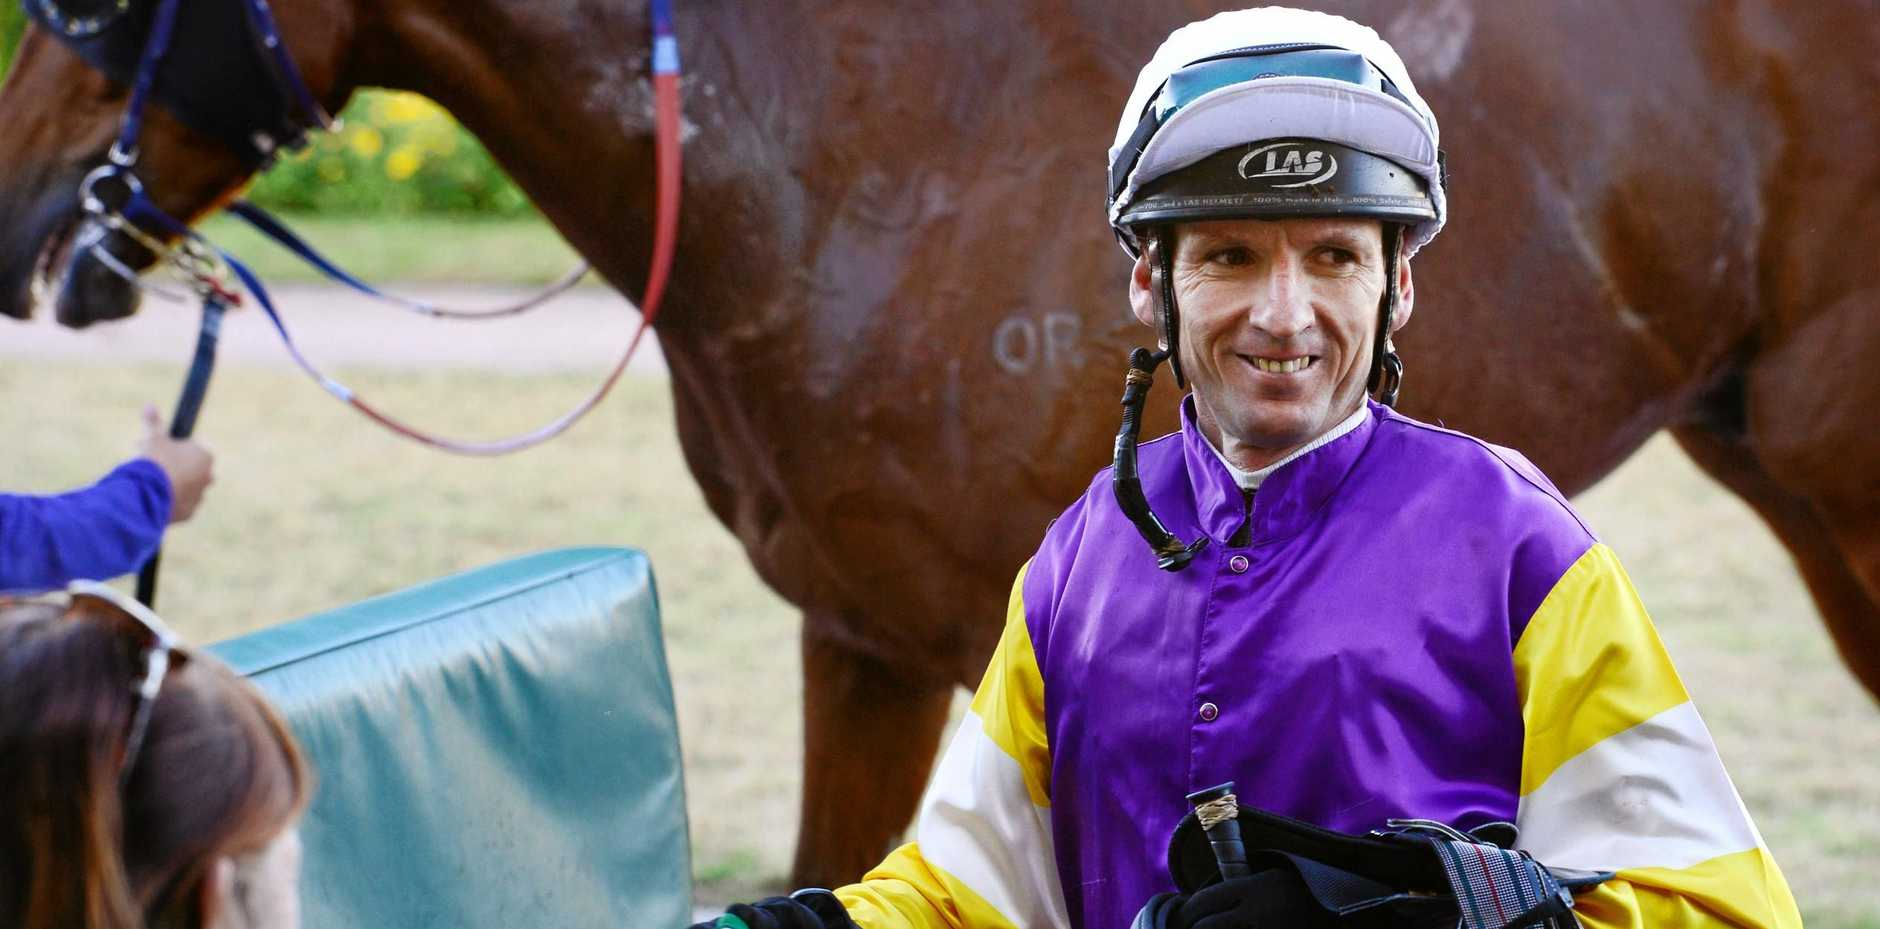 Jockey Scott Galloway (pictured at a recent Ipswich meeting) rode Godwood perfectly in the last race on Friday.